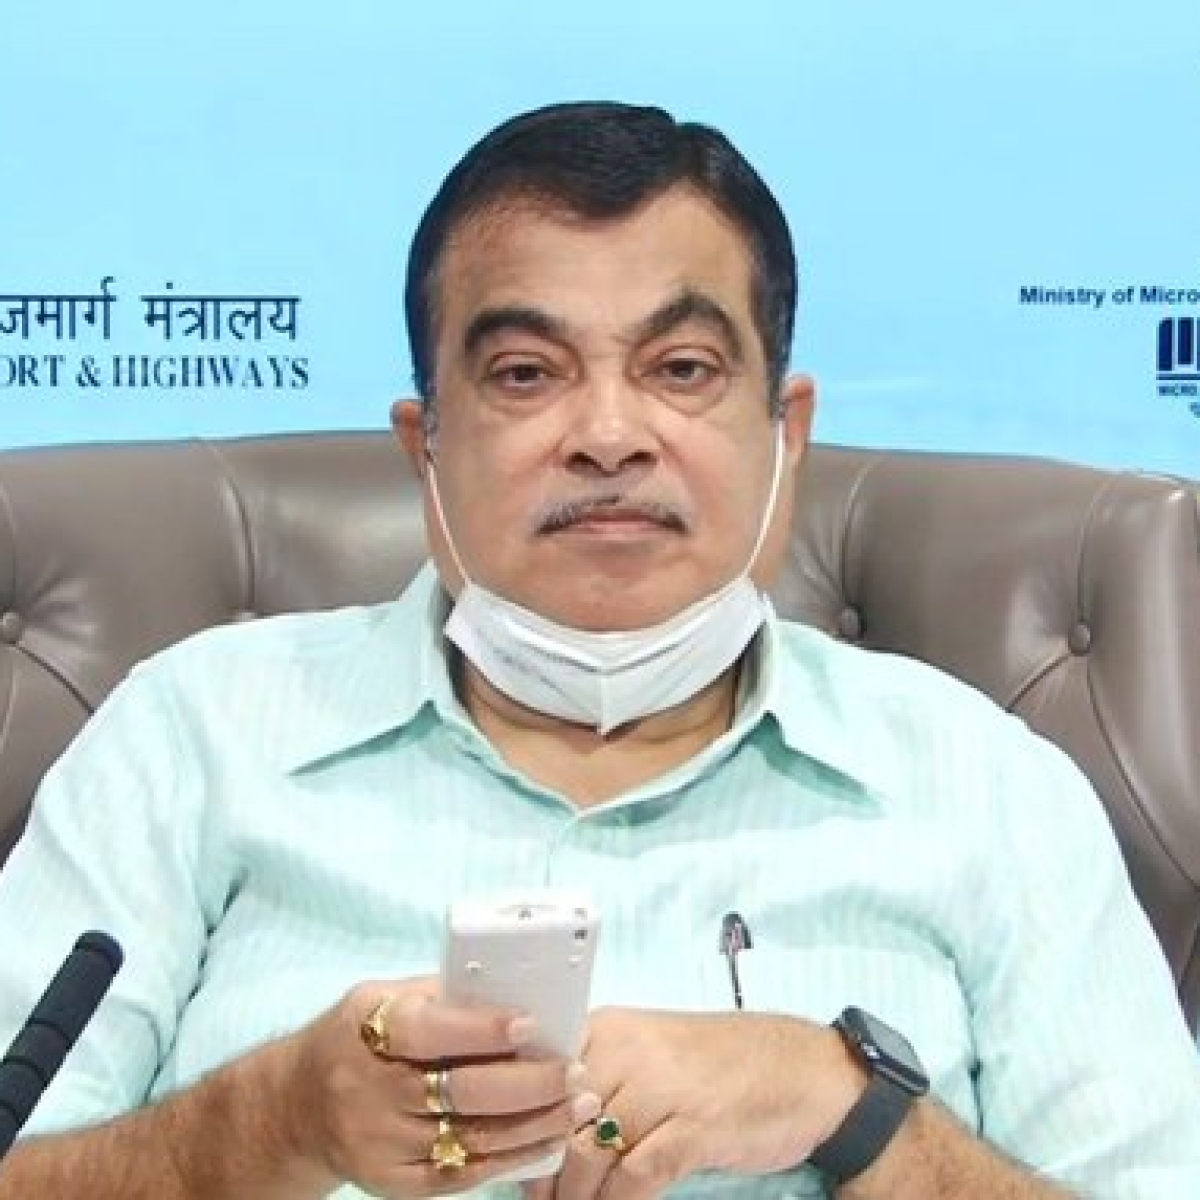 FASTag to be mandatory for vehicles from Jan 1, says Gadkari